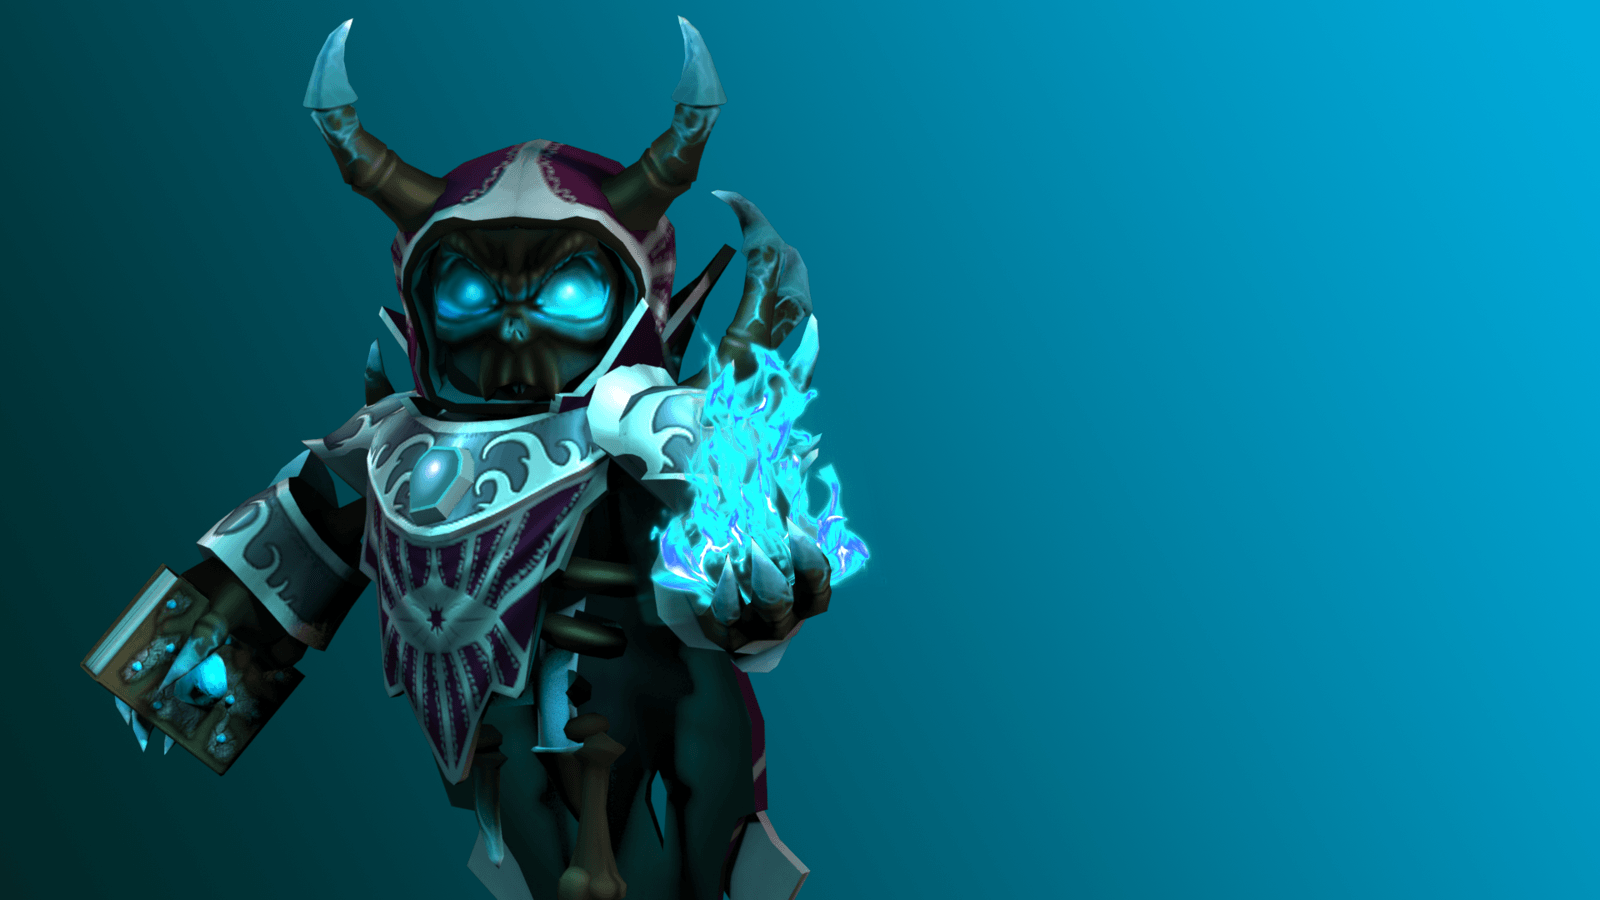 Character Cool Roblox Wallpapers